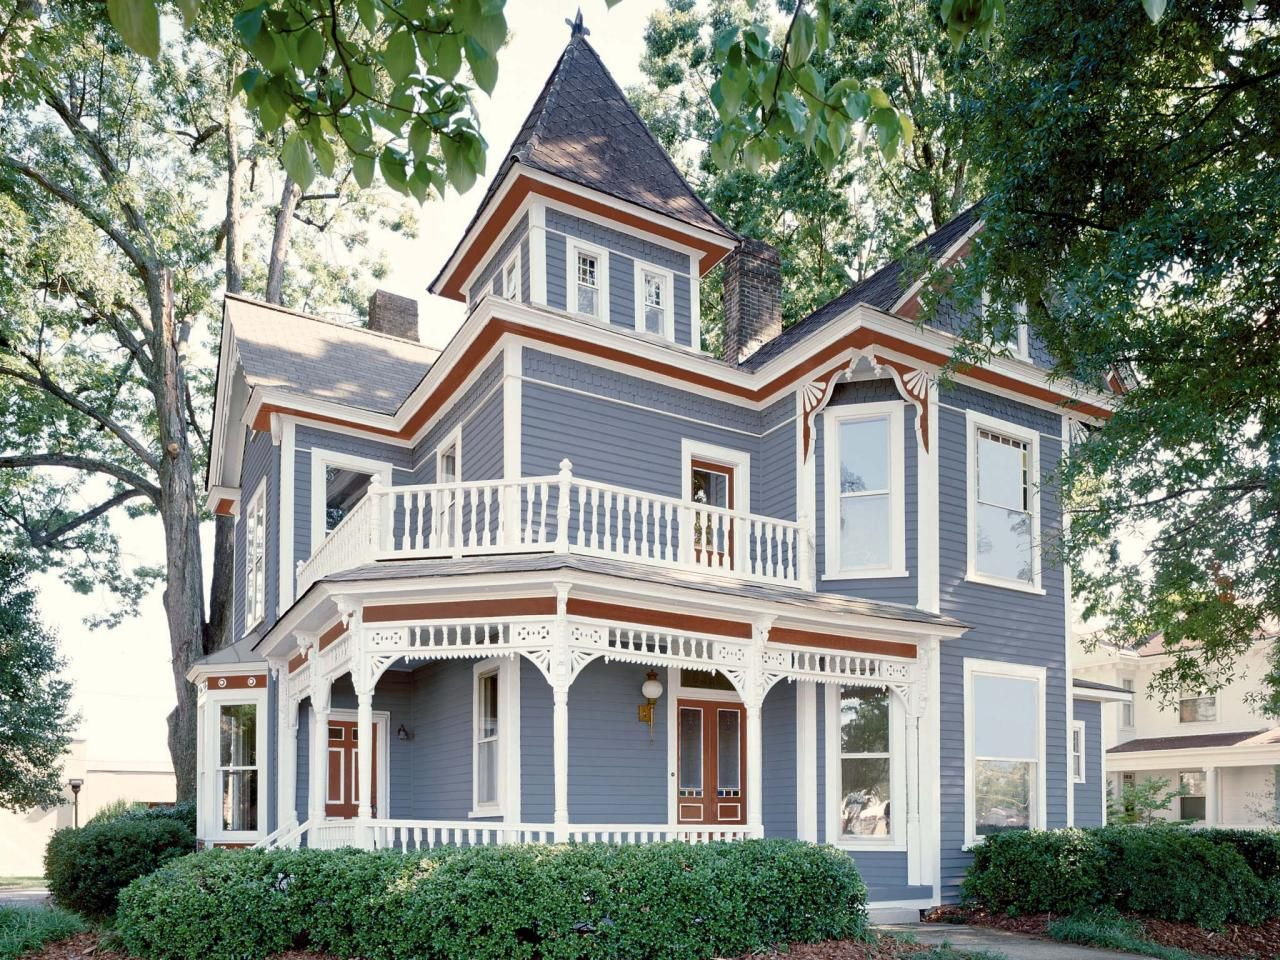 Boost your victorian style homes curb appeal with these simple landscaping and home maintenance tips